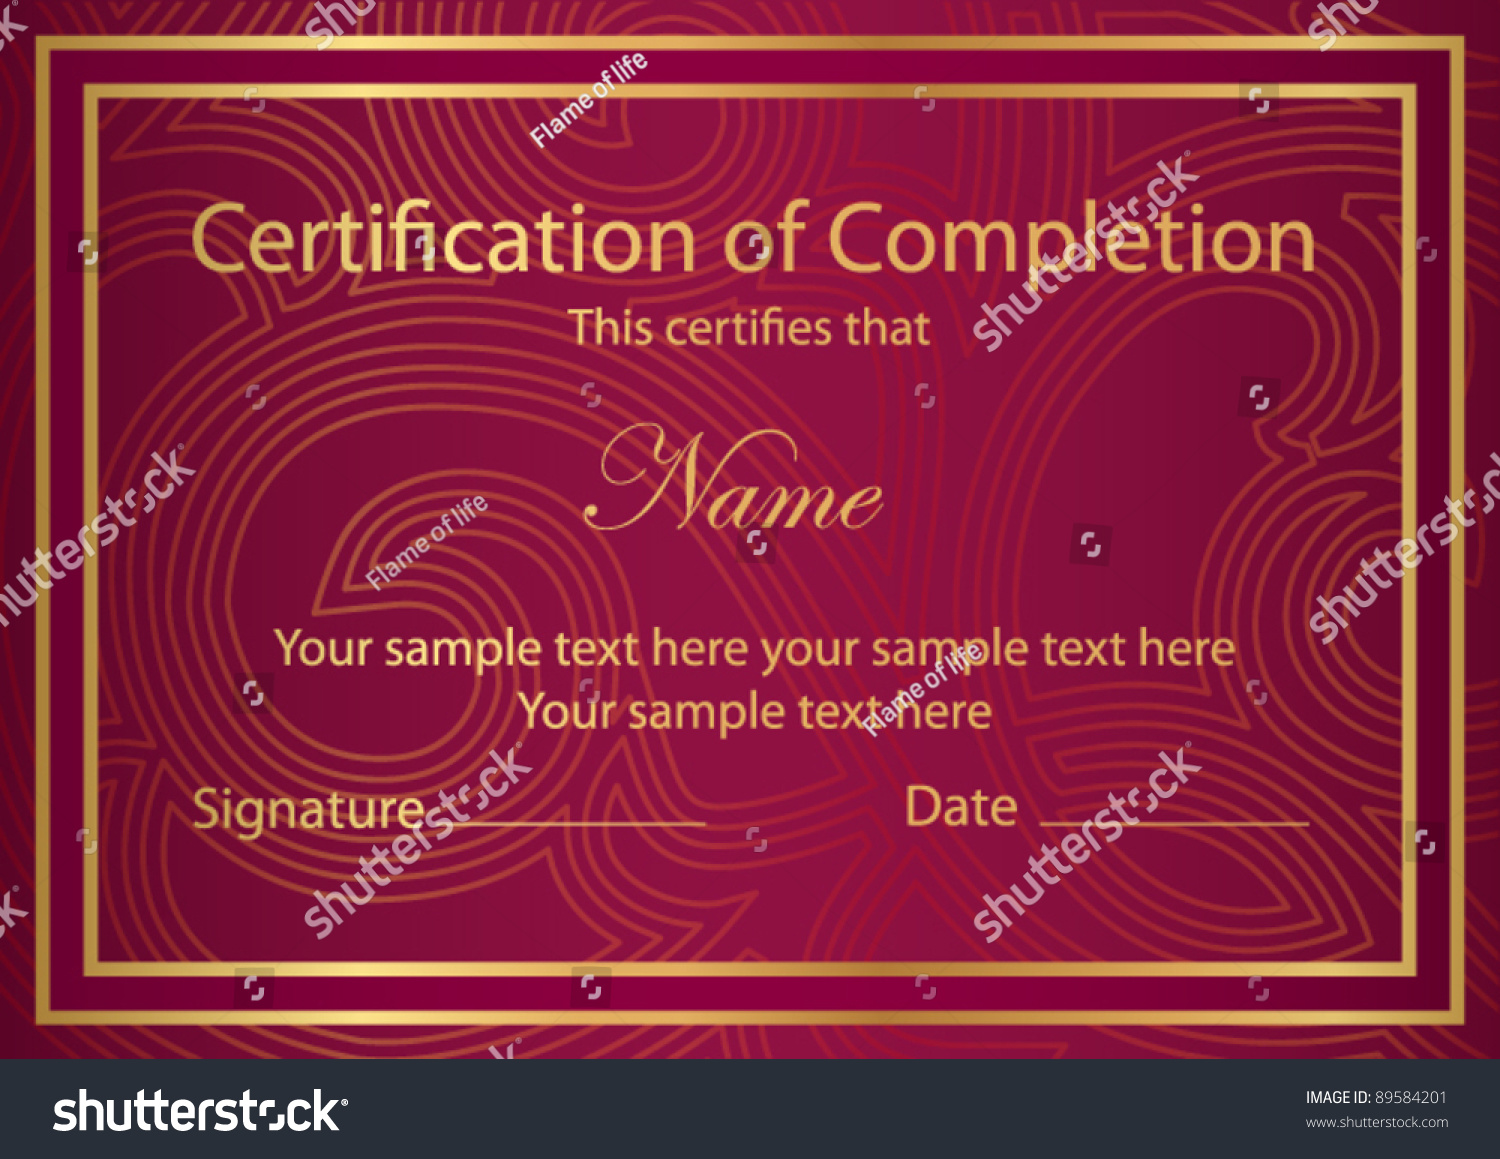 Horizontal Red Certificate Of Completion Template With Golden Floral  Pattern And Border. This Design Usable